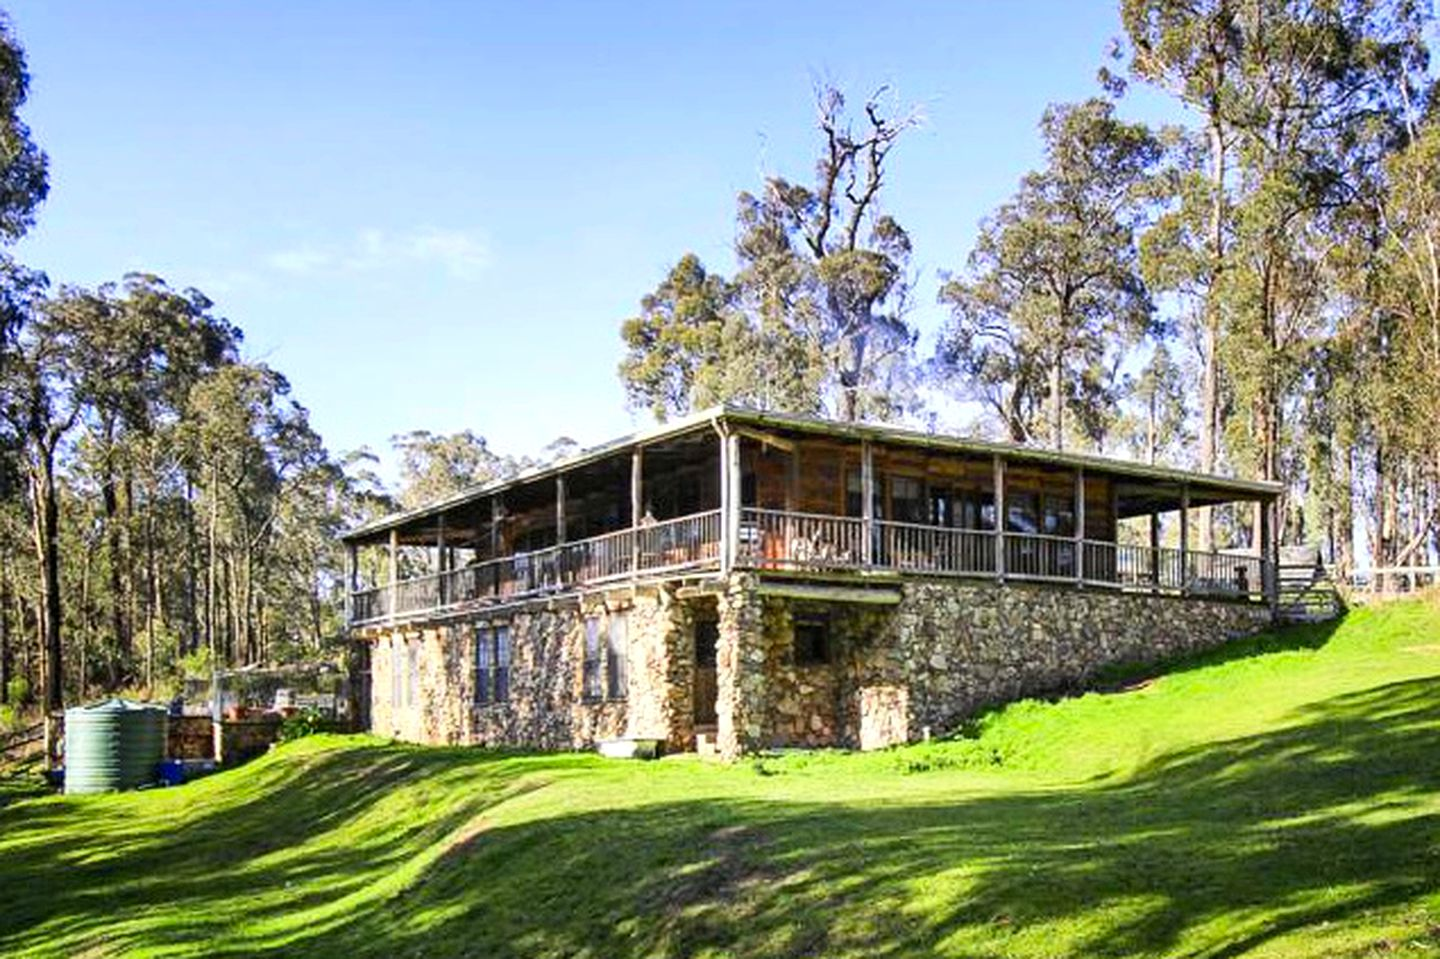 This Gippsland accommodation is ideal for family getaways in Victoria